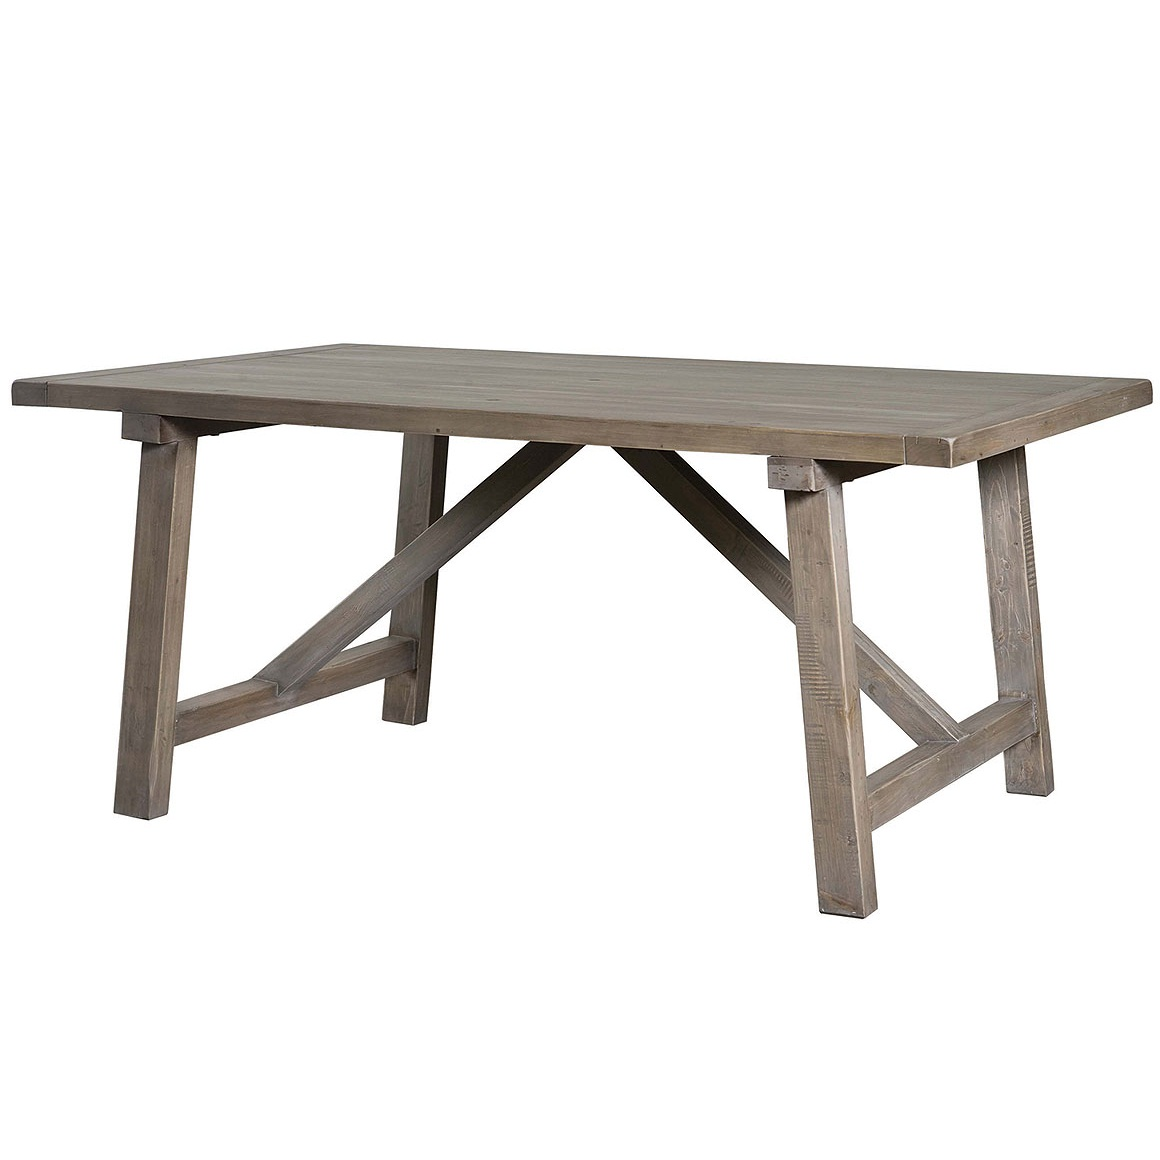 Dining table farm house dining table - Dining table images ...